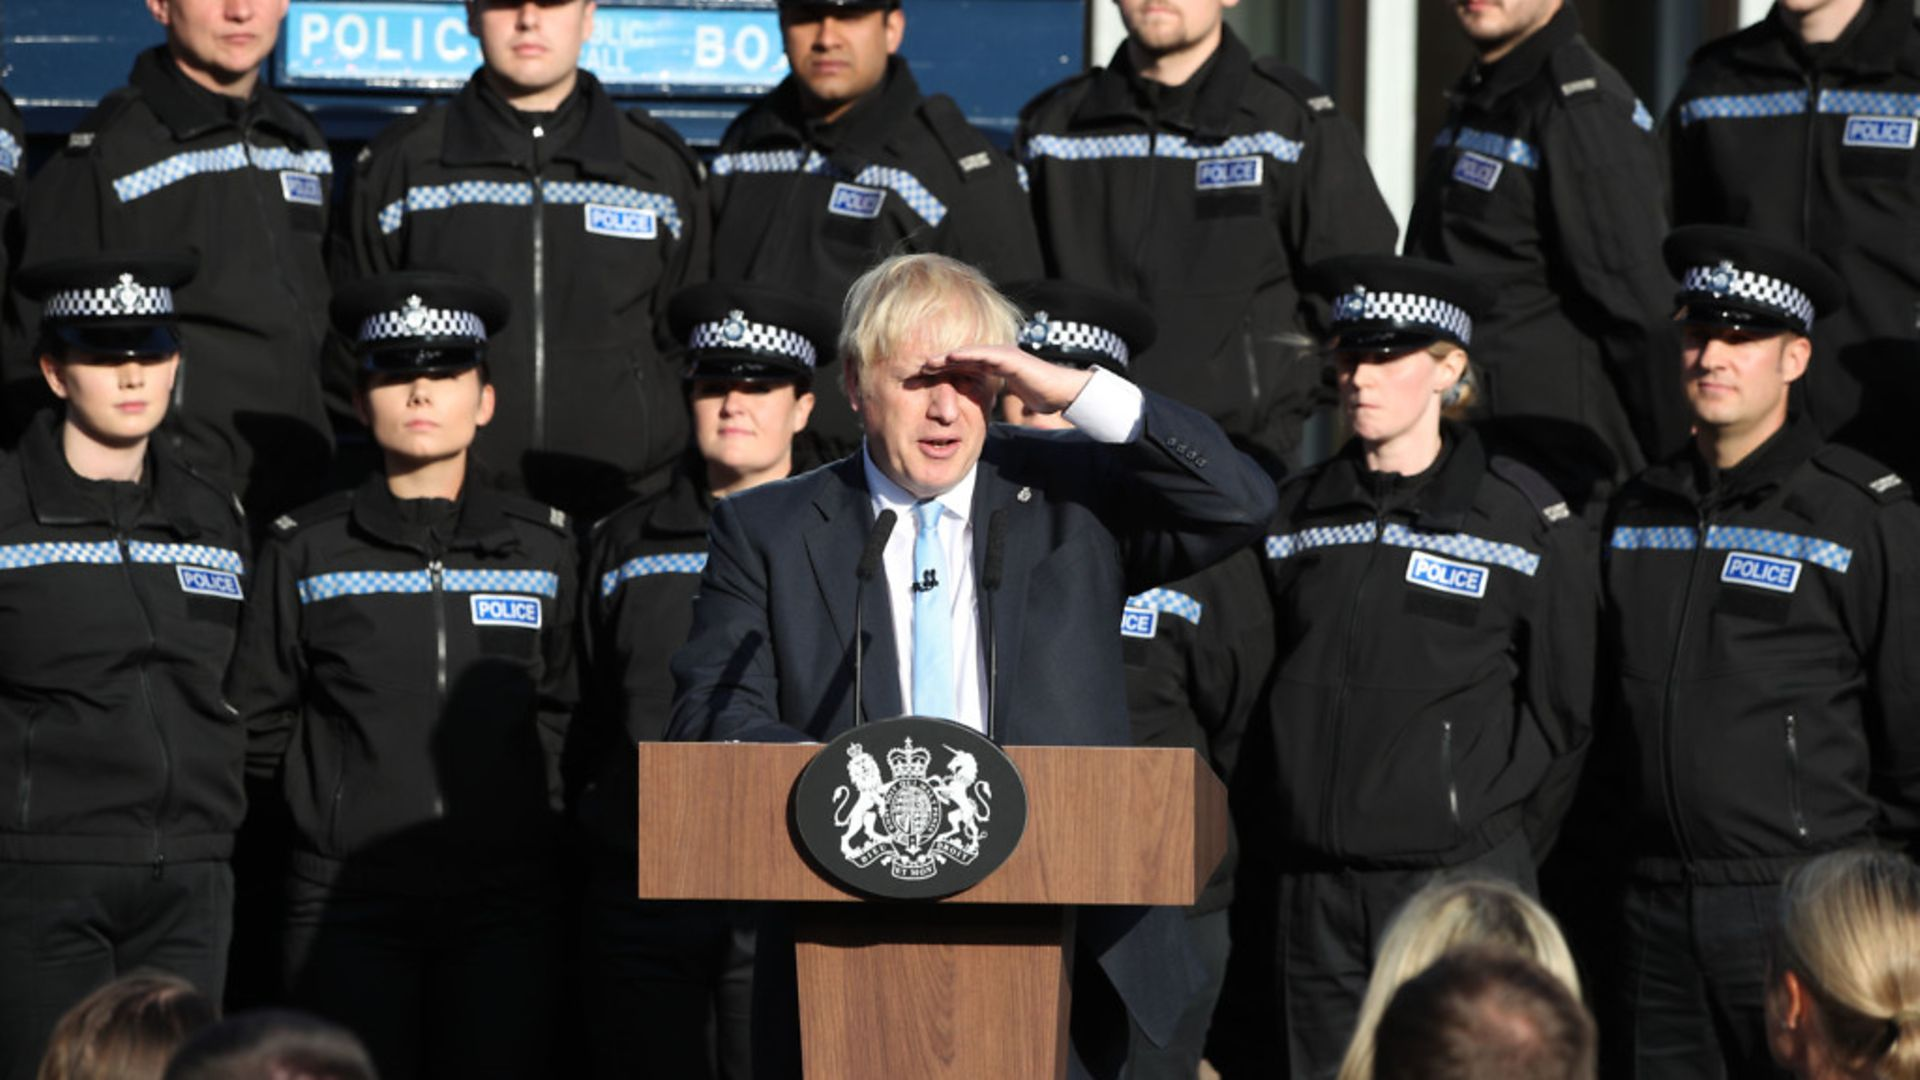 Boris Johnson making a speech during a visit to West Yorkshire - Credit: PA